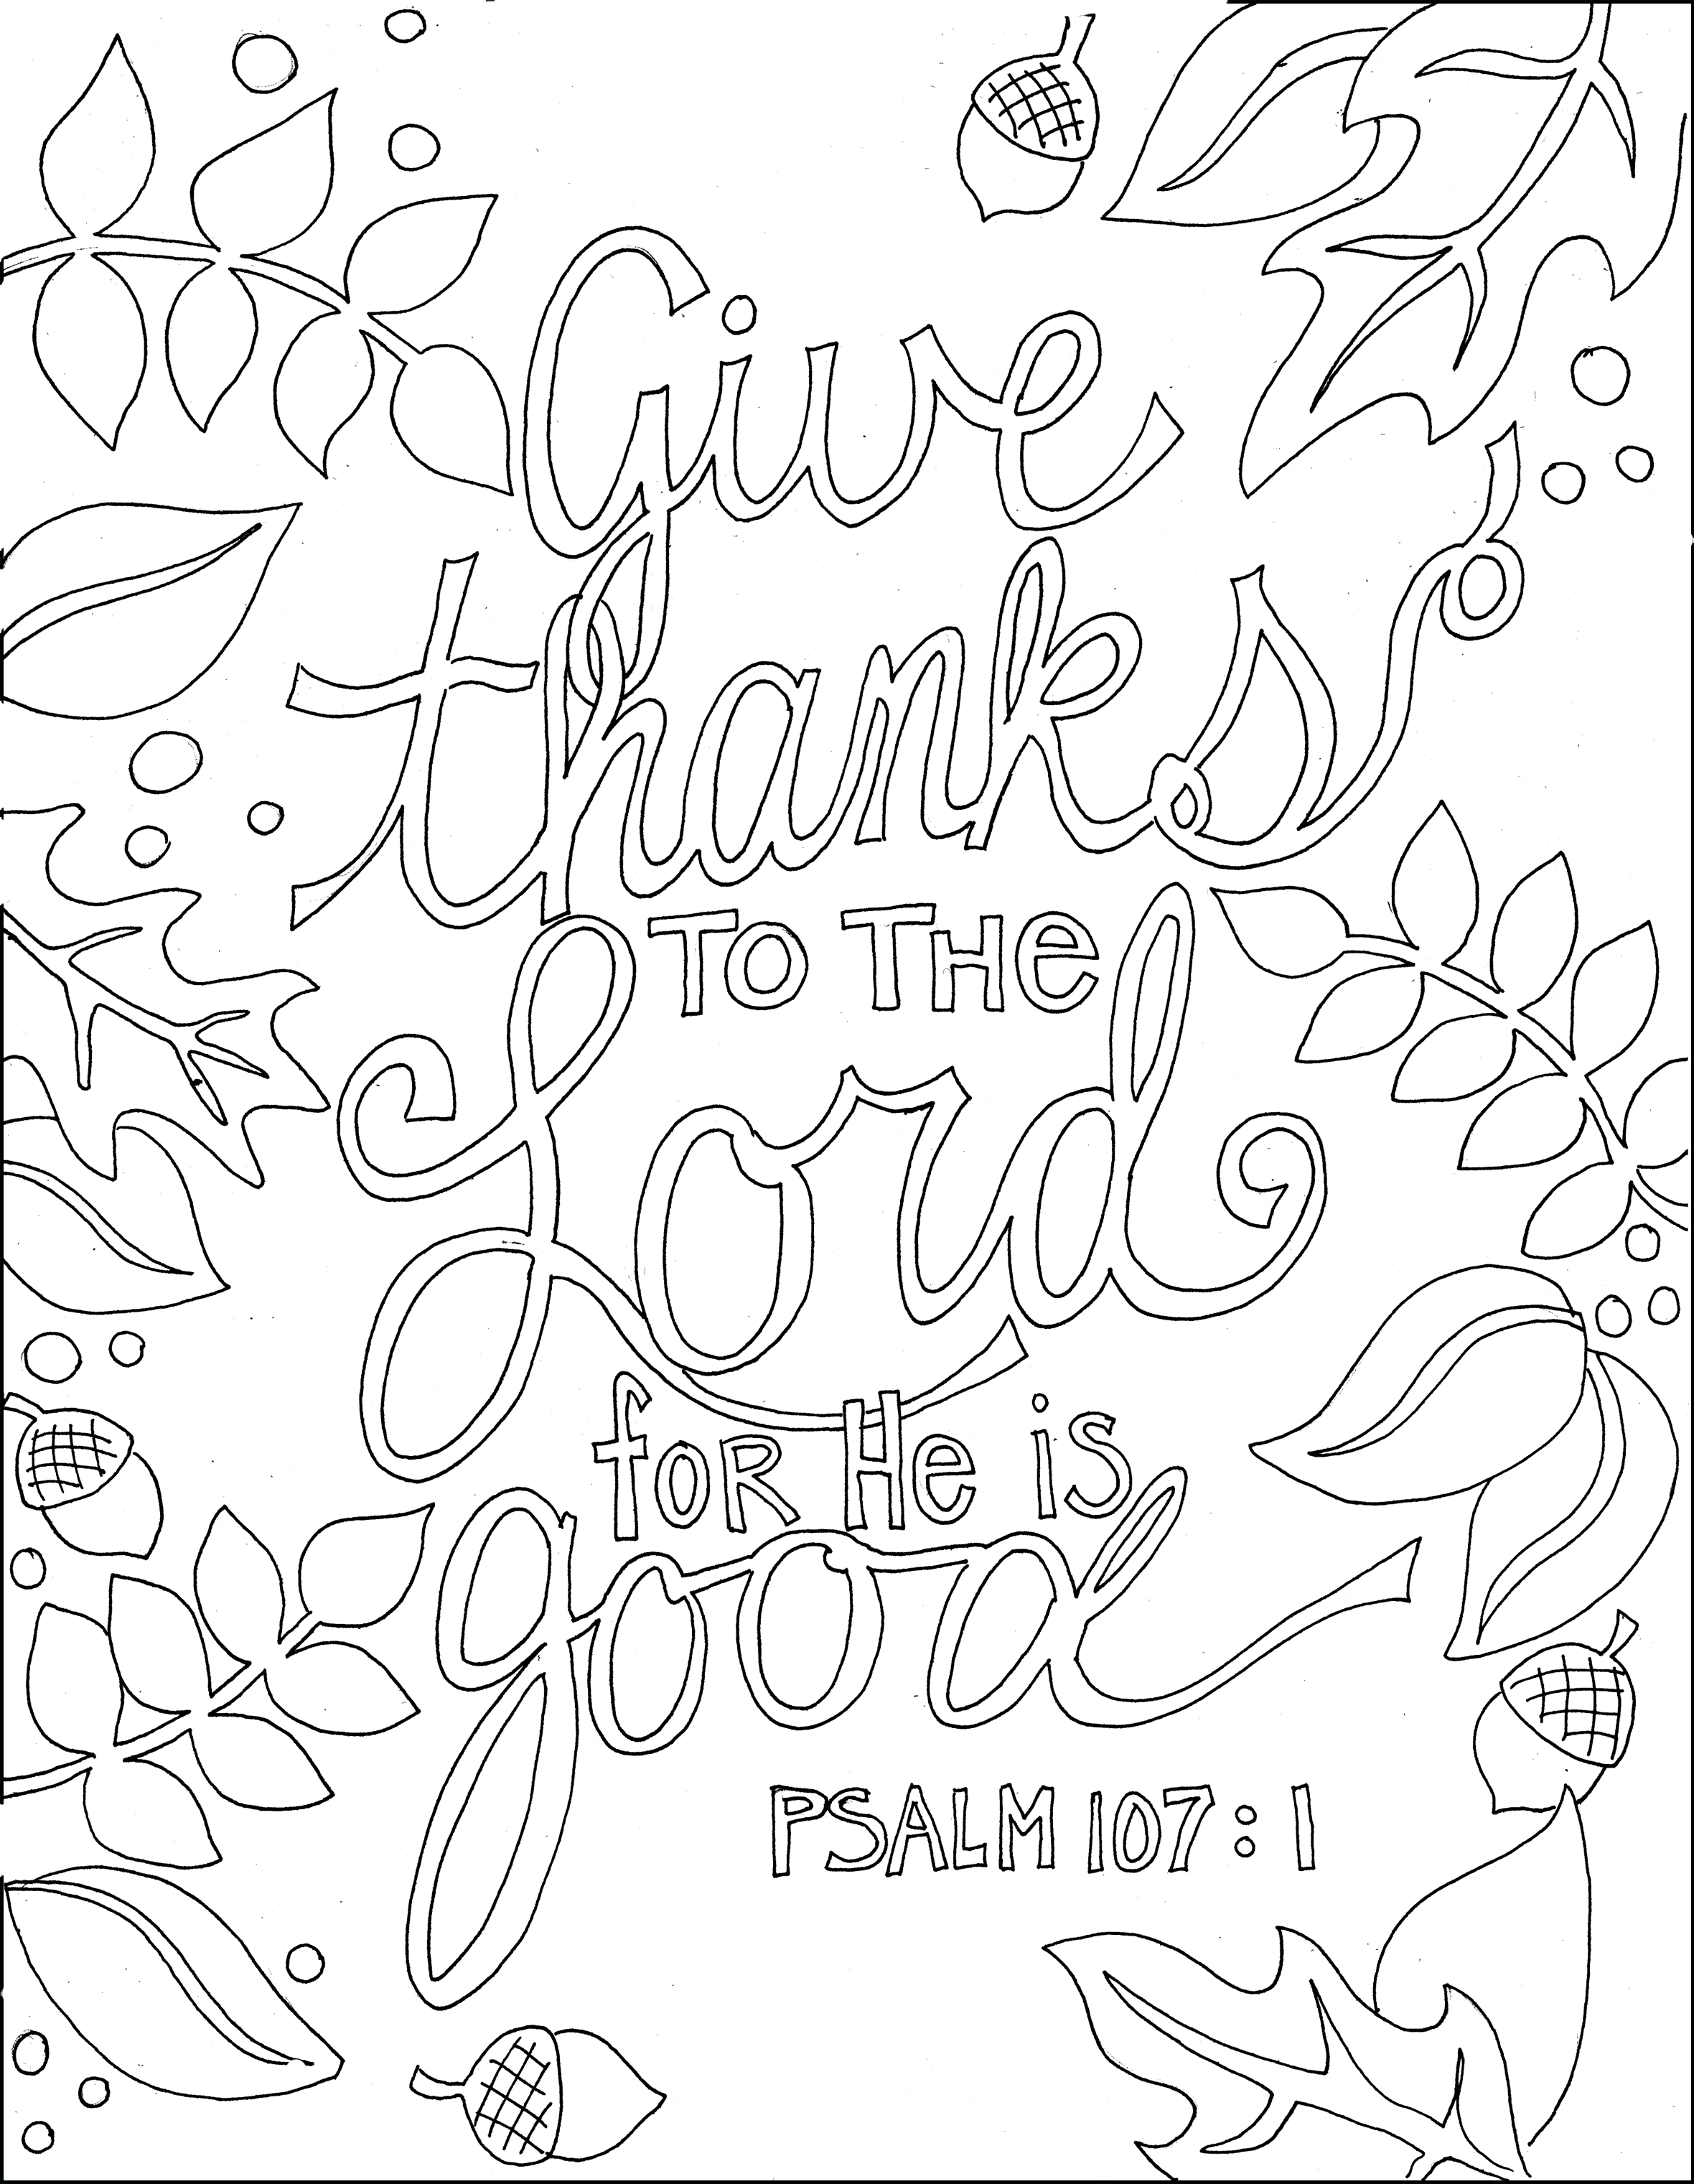 free printable bible coloring pages joseph coloring pages best coloring pages for kids pages free bible printable coloring